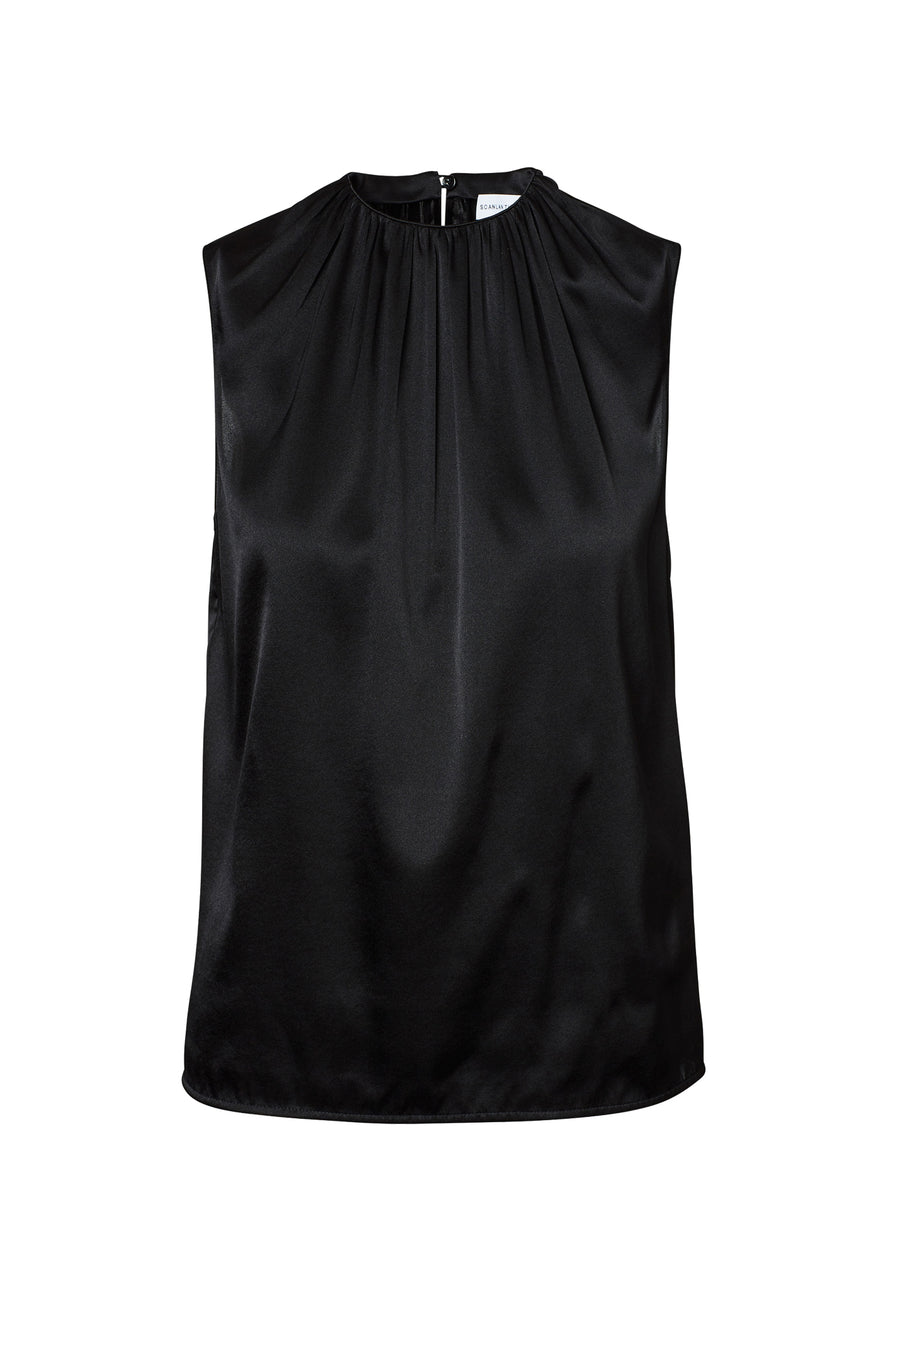 Silk Satin Tank, cut on the bias, soft drape with a slightly loose silhouette, High Neck, Color Black